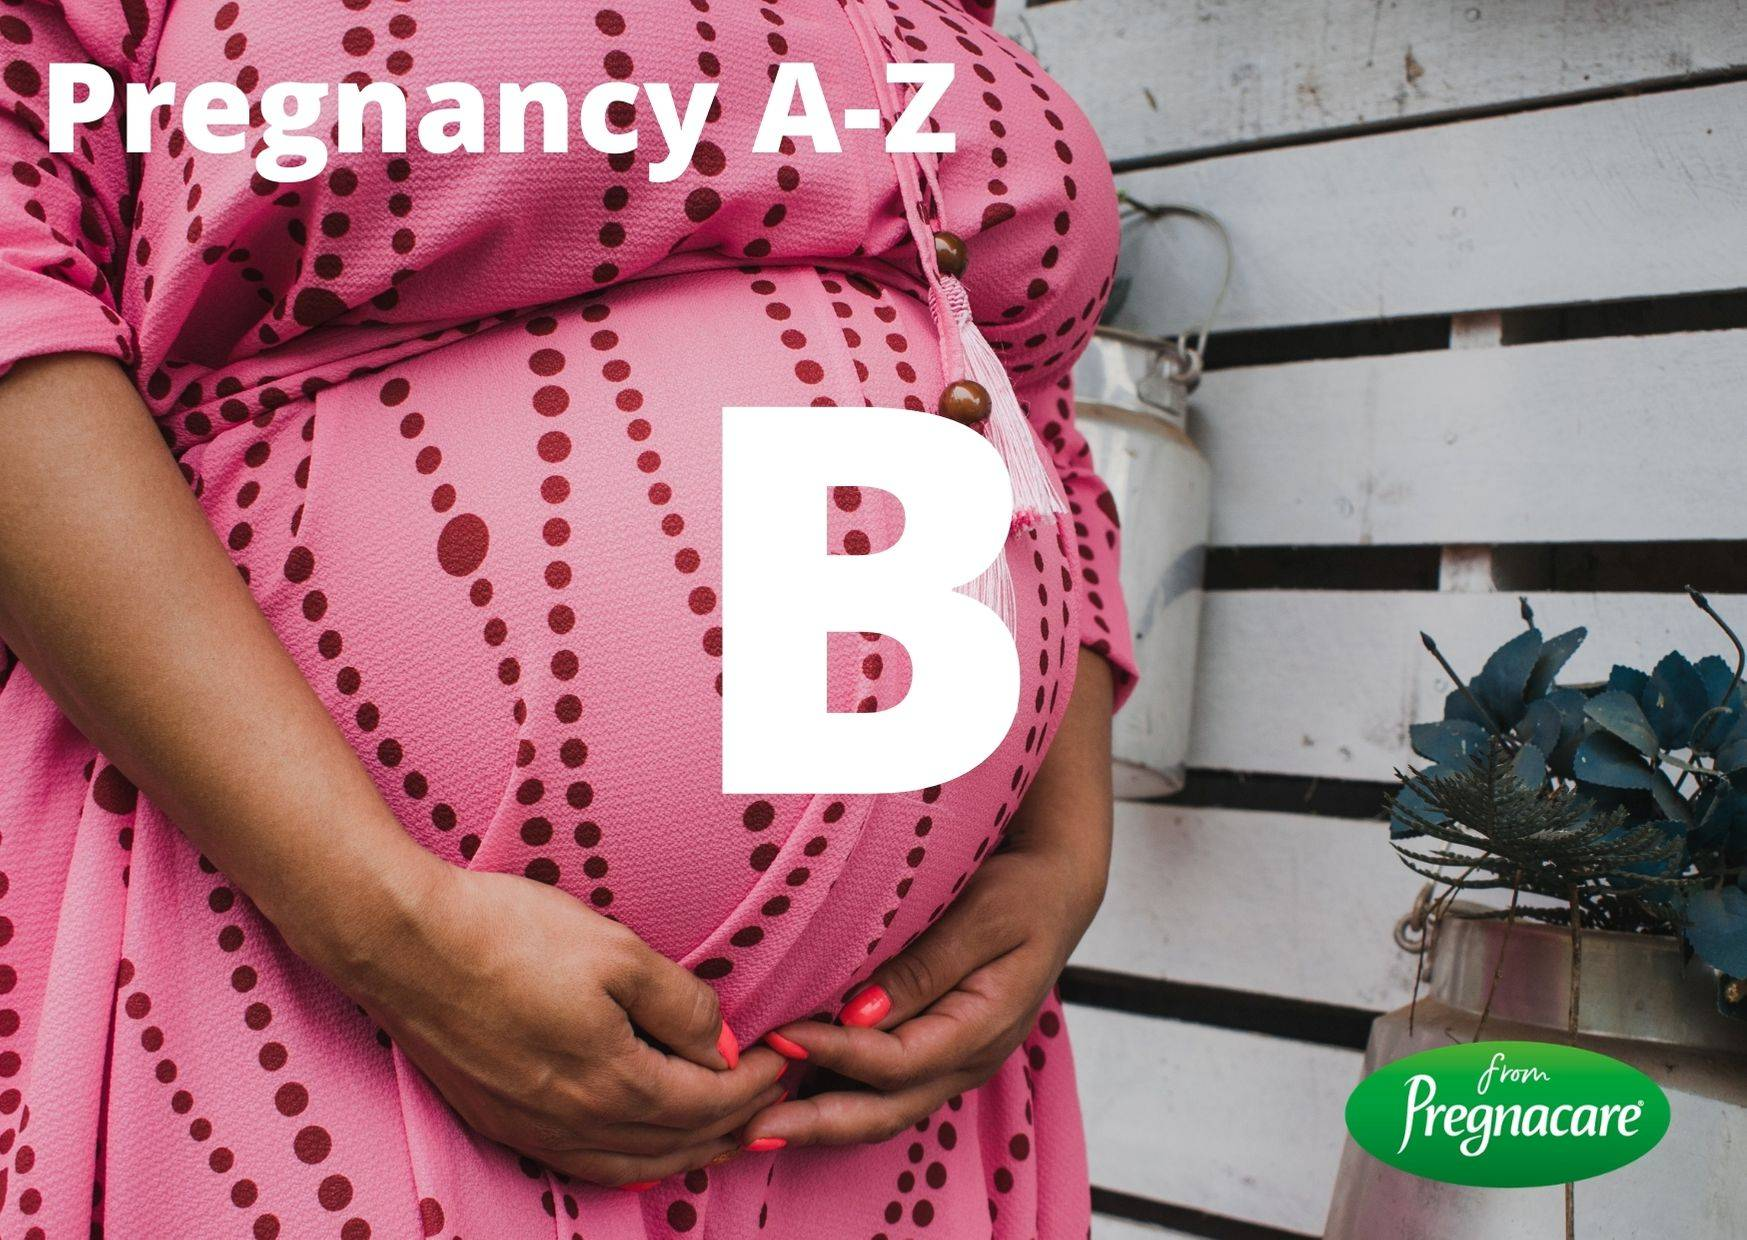 Letter B With Pregnant Woman Background